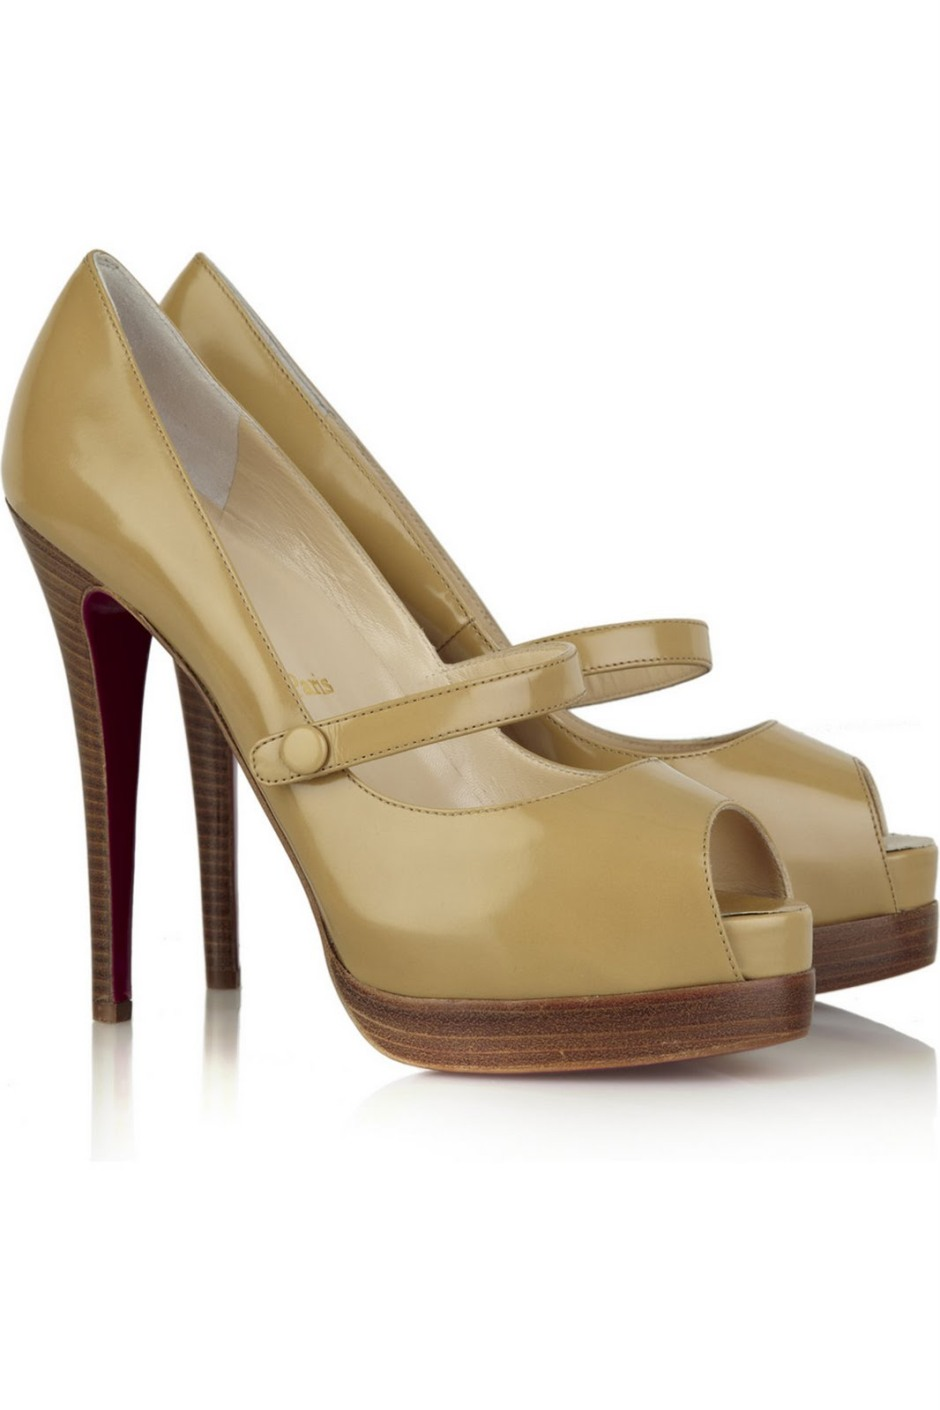 loubmaryjanes_jazz_no_barre_Christian Louboutin Paris 140 mm_LMUW